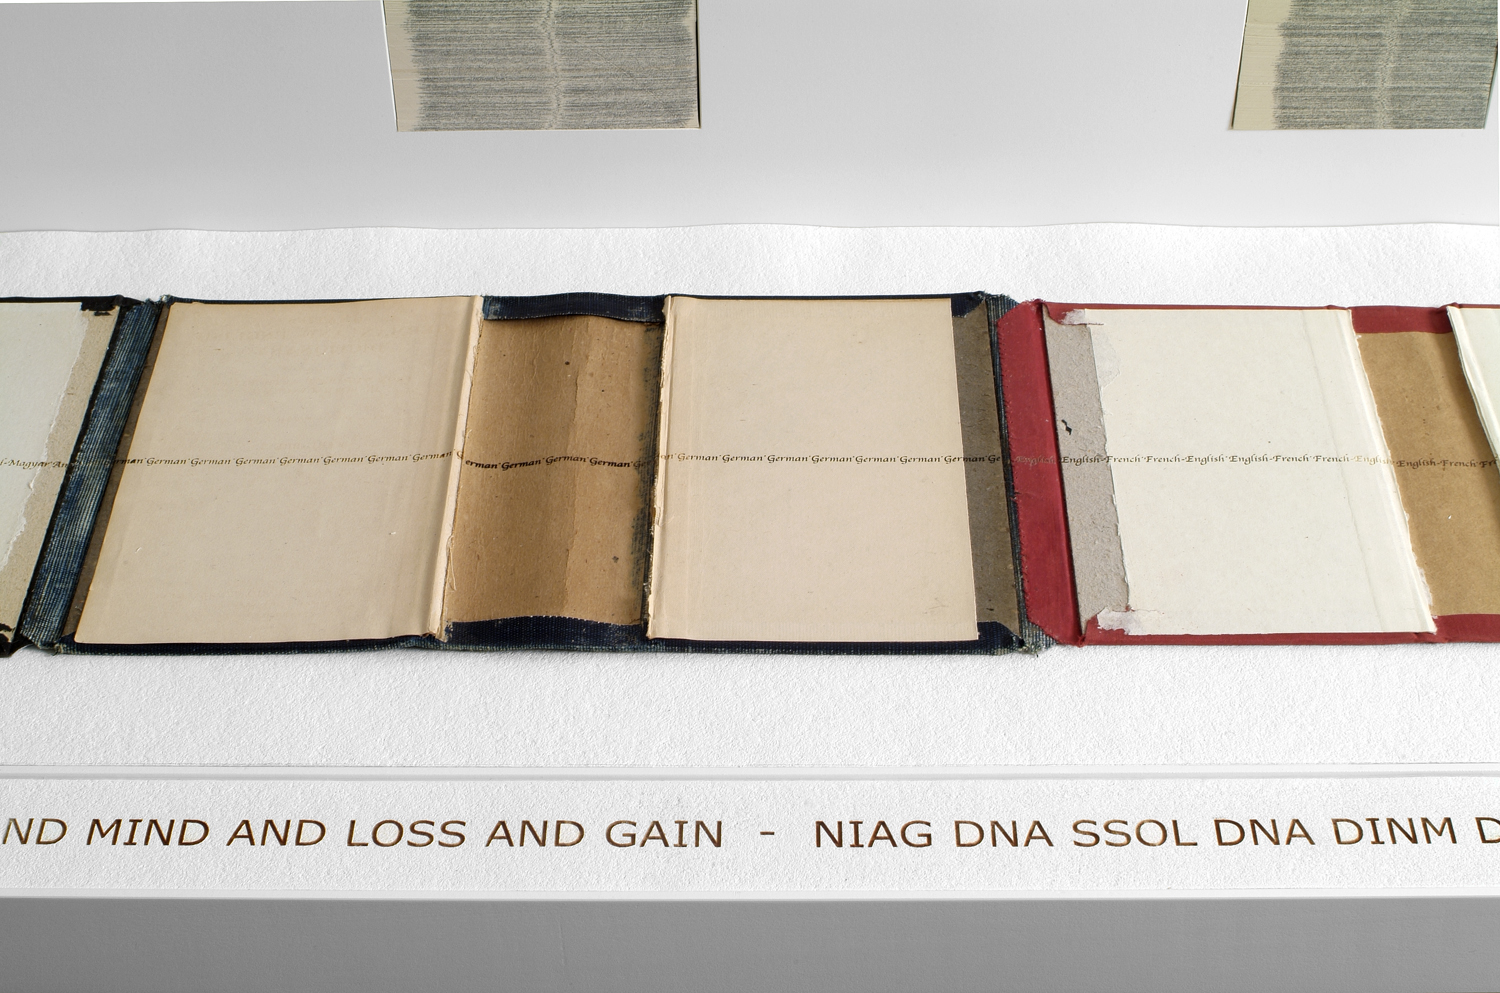 ledger    joins dictionary covers of multiple languages into one long (twelve foot) book cover placed on a shelf. The shelf is backed with mounted cut dictionary pages placed vertically in columns. Text is engraved into the surface of the covers and into a piece of felt to explore ideas about personal and universal measurements of loss and gain.